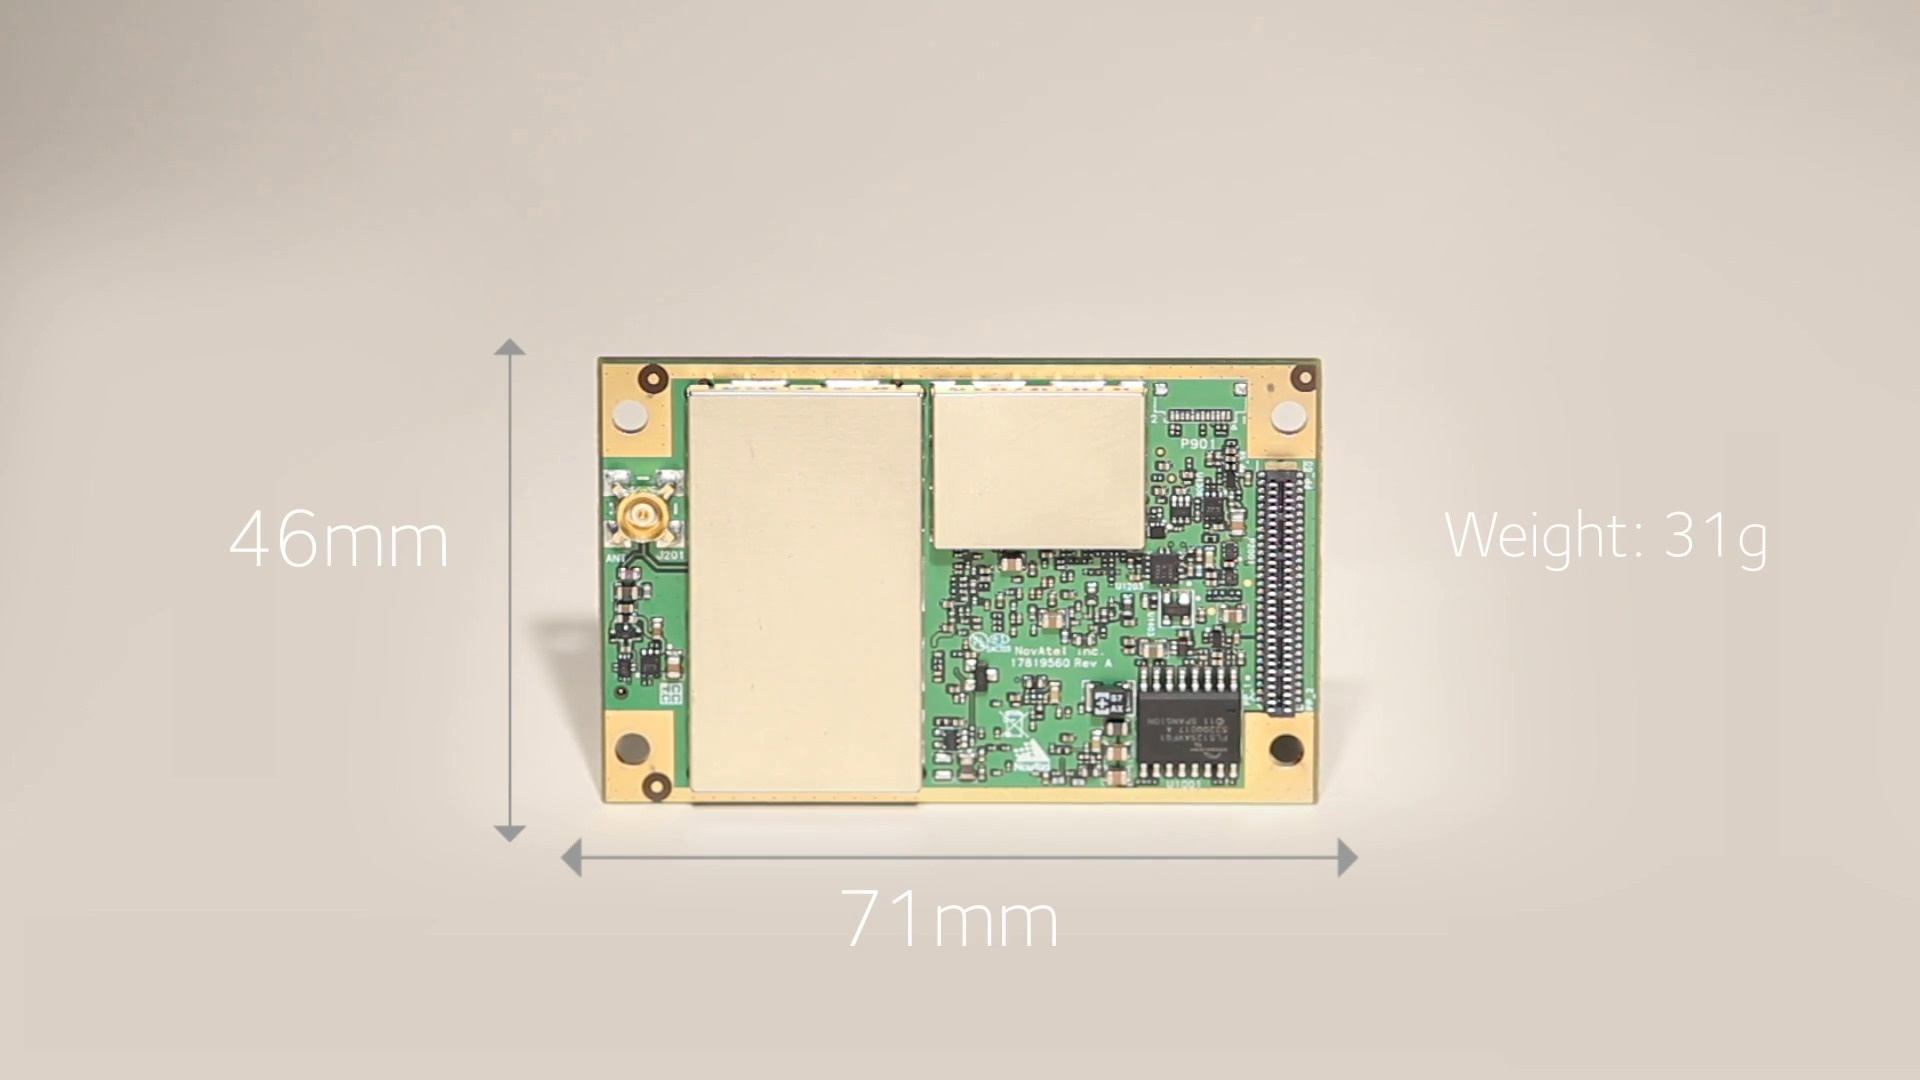 Oem7700 Multi Frequency Gps Gnss Receiver Oem Circuit Board Video Thumbnail